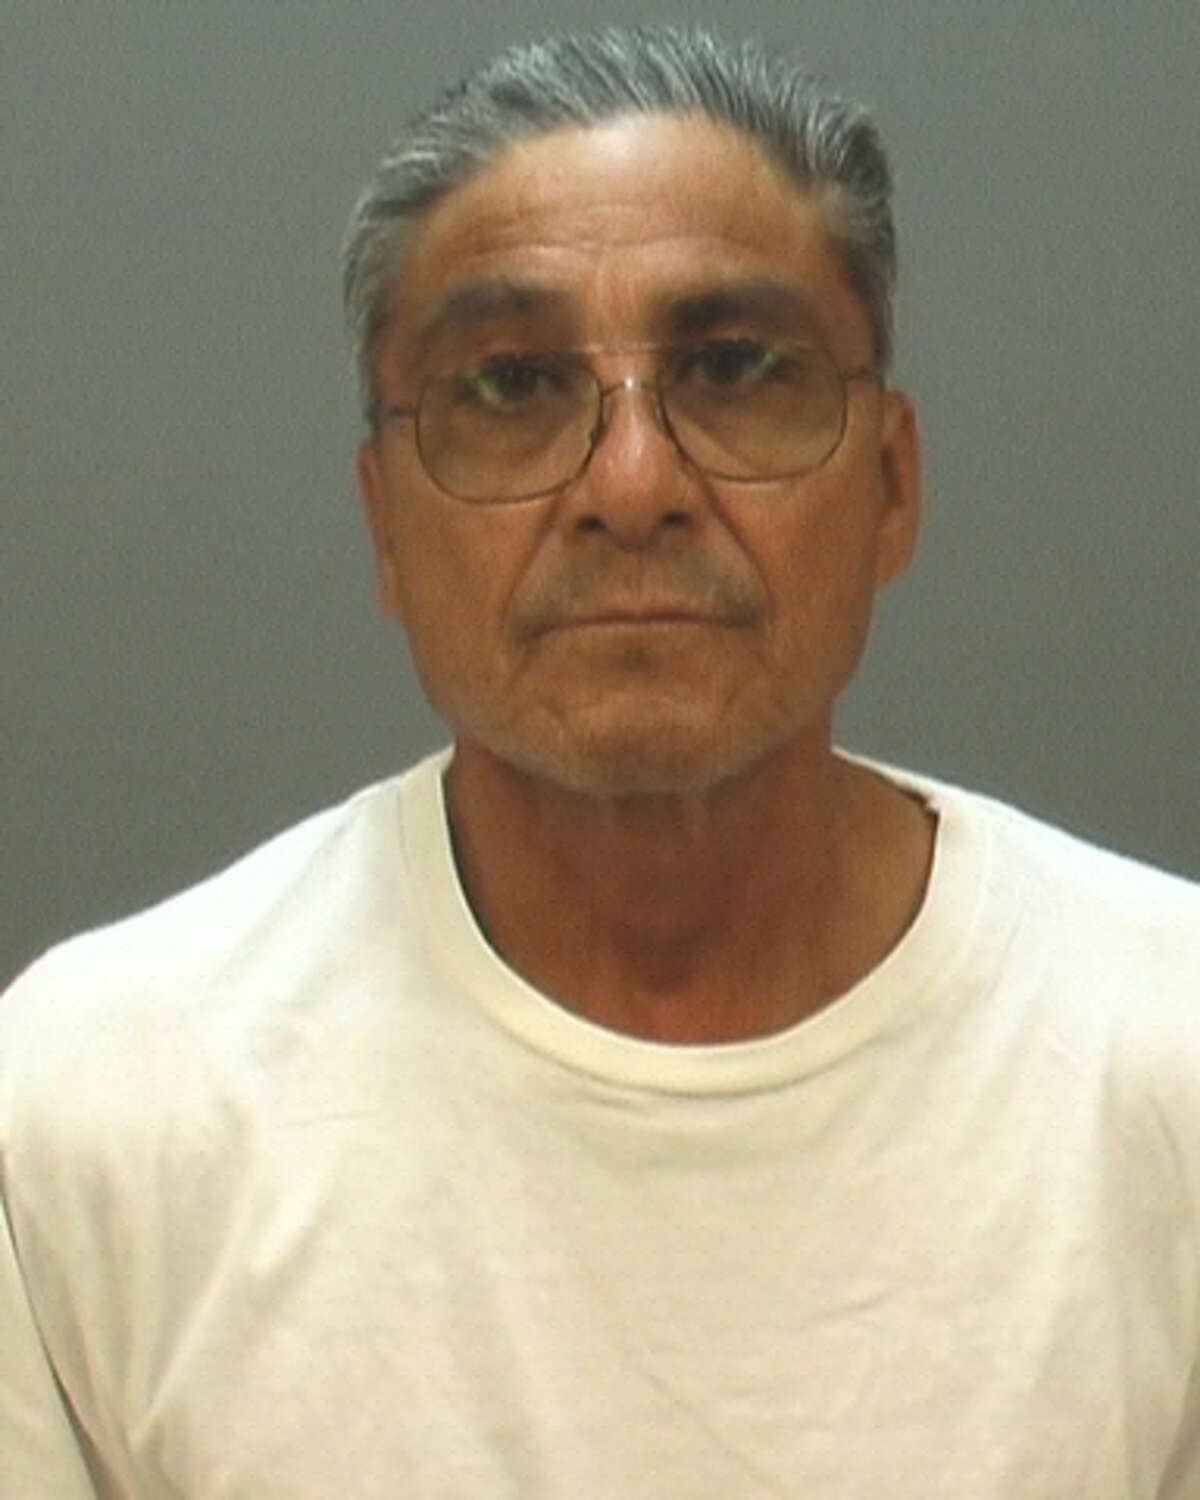 Jose Marin was arrested for interfering with public duties on Nov. 23, 2012.